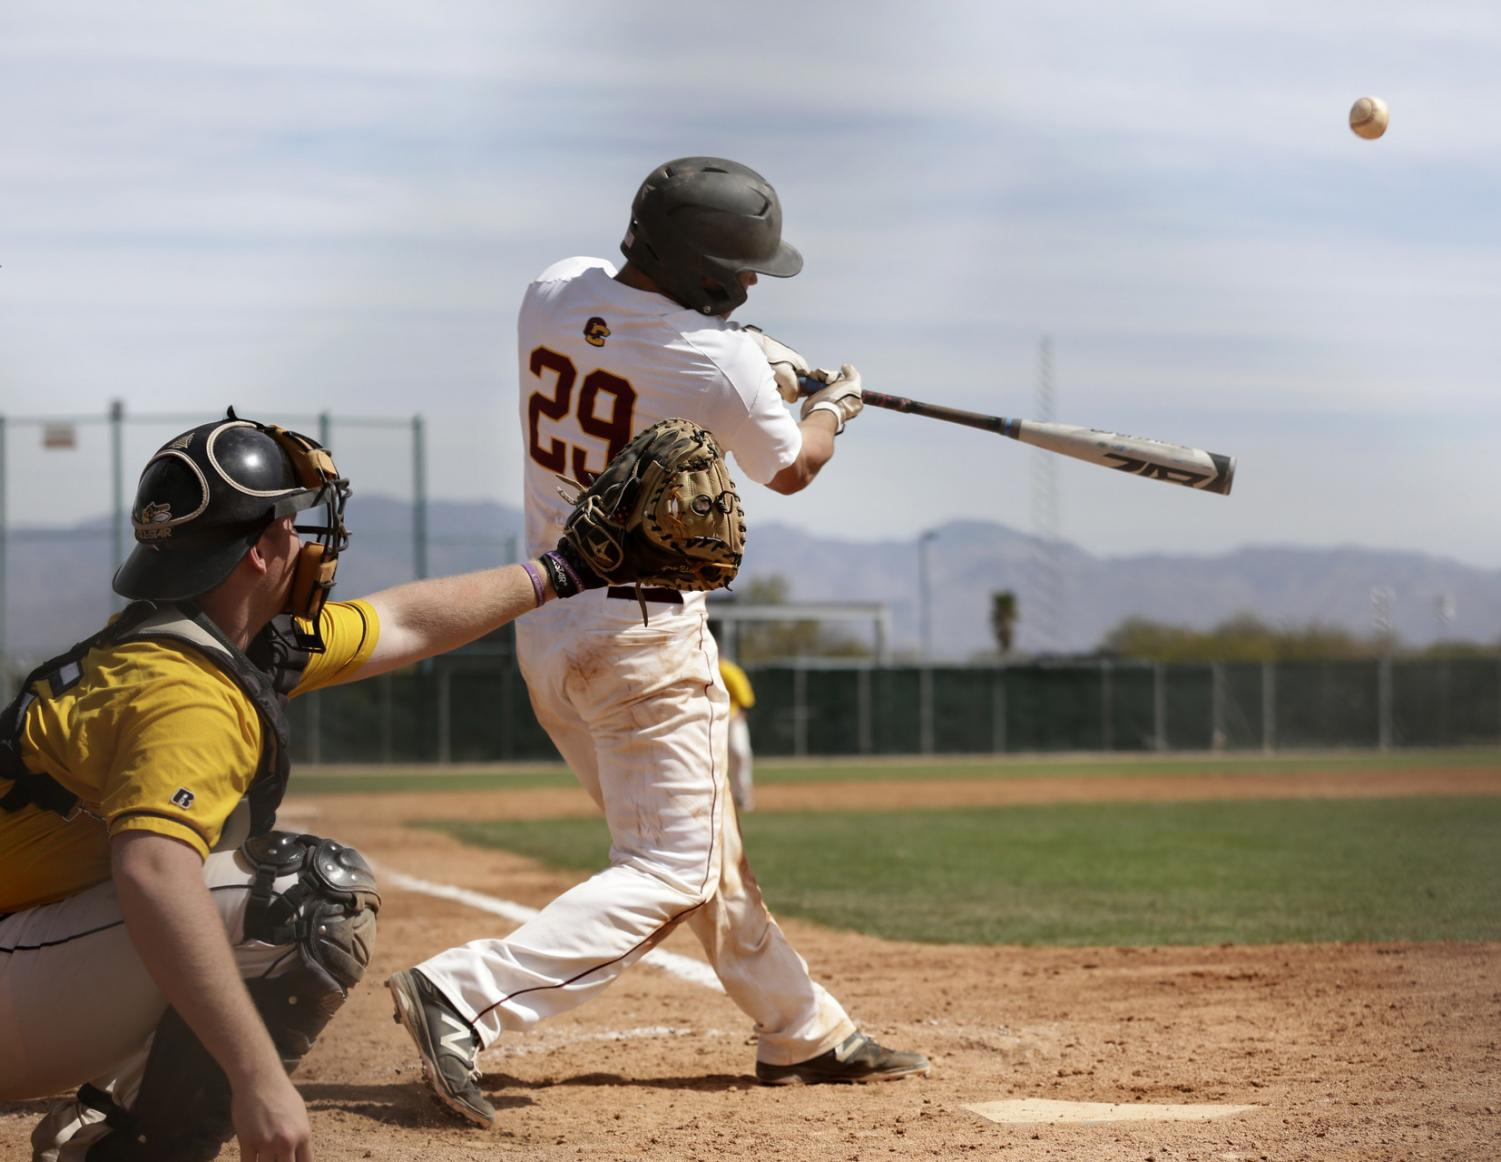 Junior catcher Brendan Mapes rips the ball against competition in Tucson, AZ. Mapes currently leads the team in conference play with a .350 batting average.